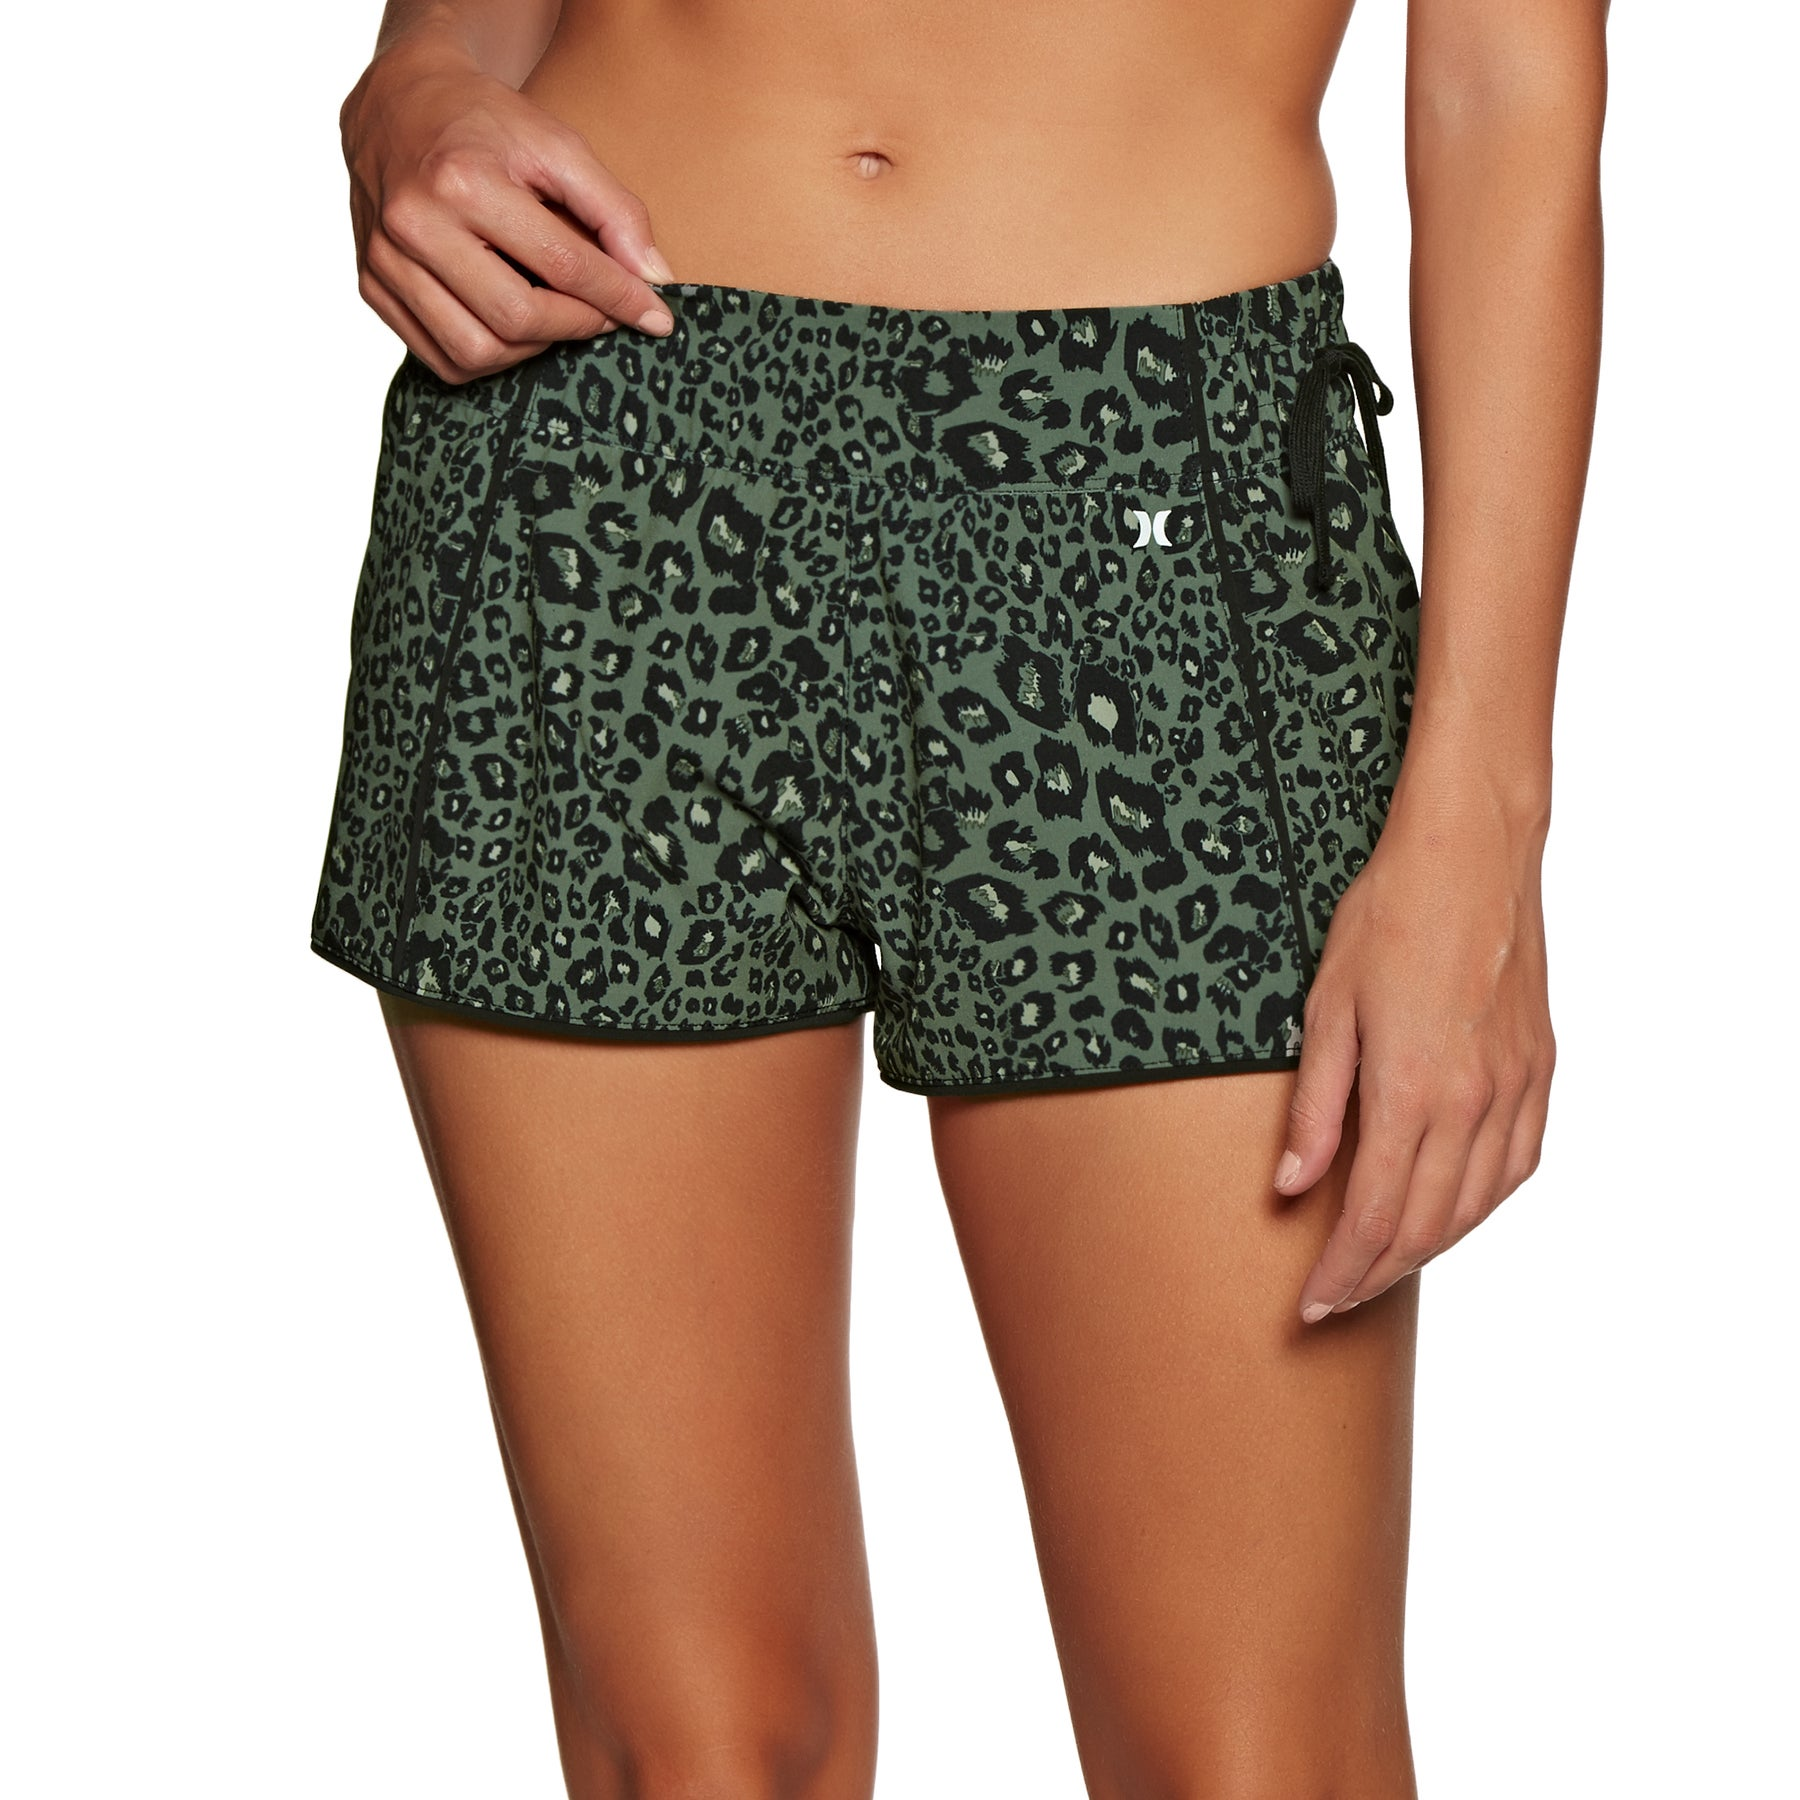 c62beb818a Hurley Phantom Waverider Leopard Womens Boardshorts available from Surfdome